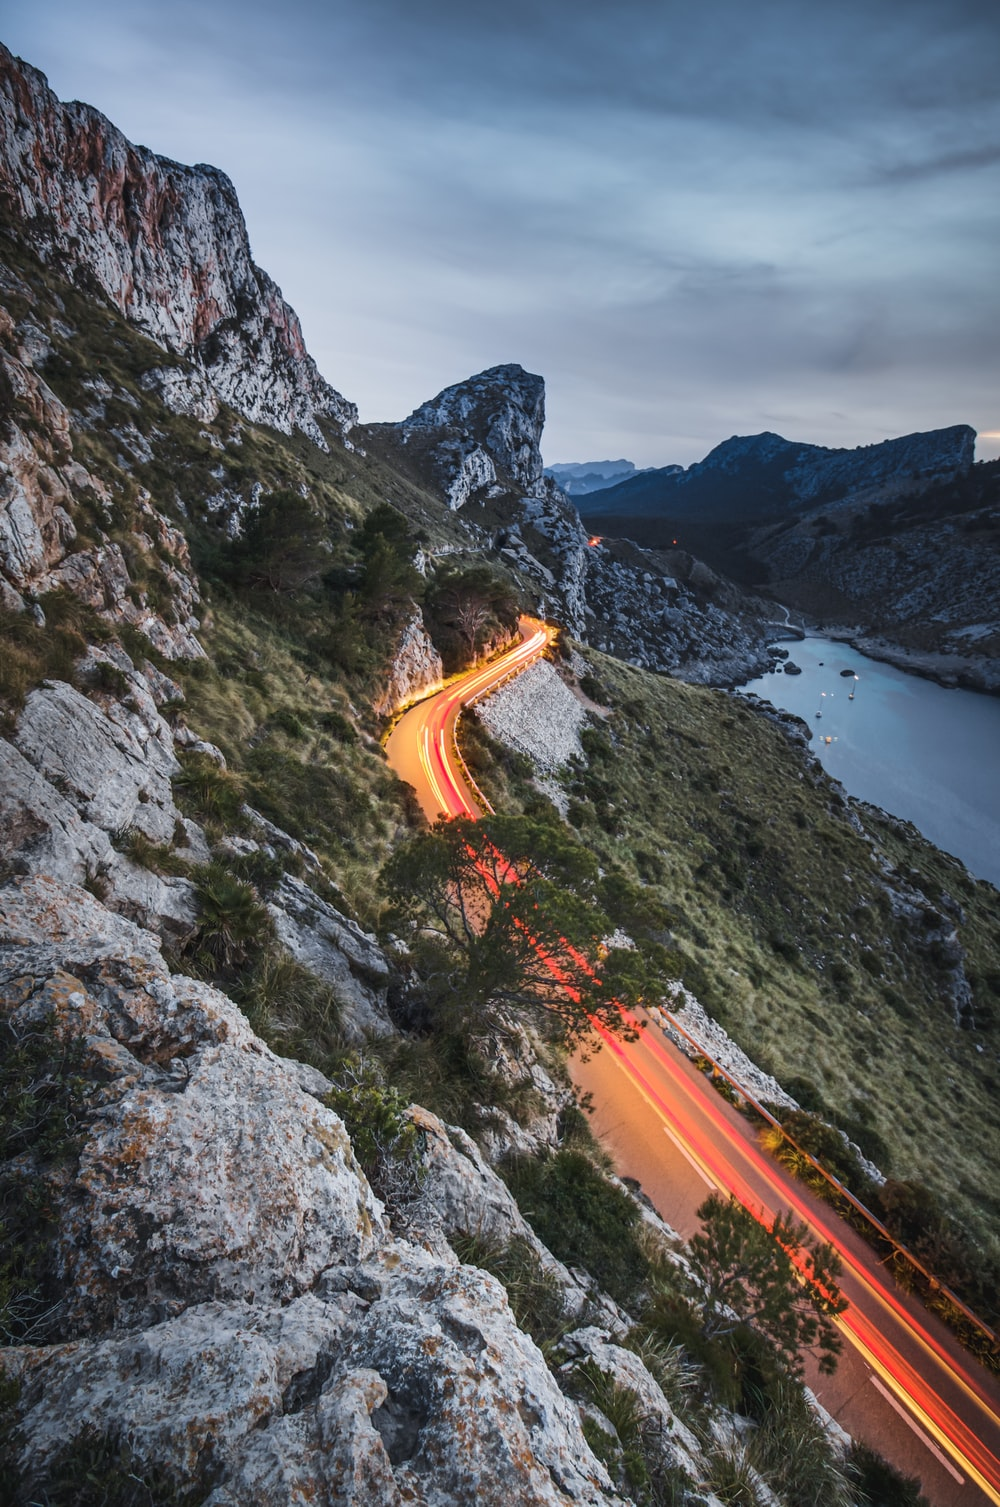 road beside a cliff near body of water during daytime